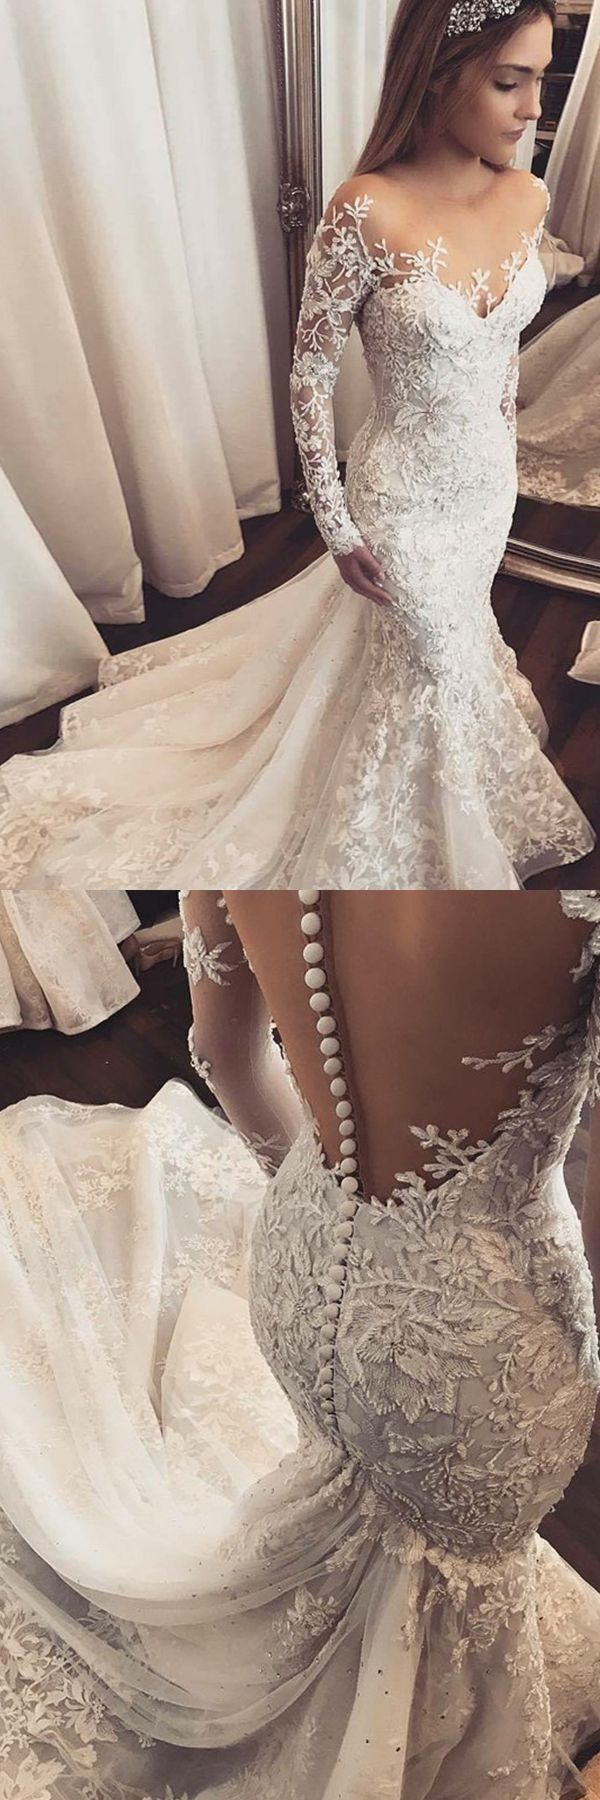 elegant long sleeves wedding dresses, mermaid the big day dresses, chic tulle wedding dress with appliques